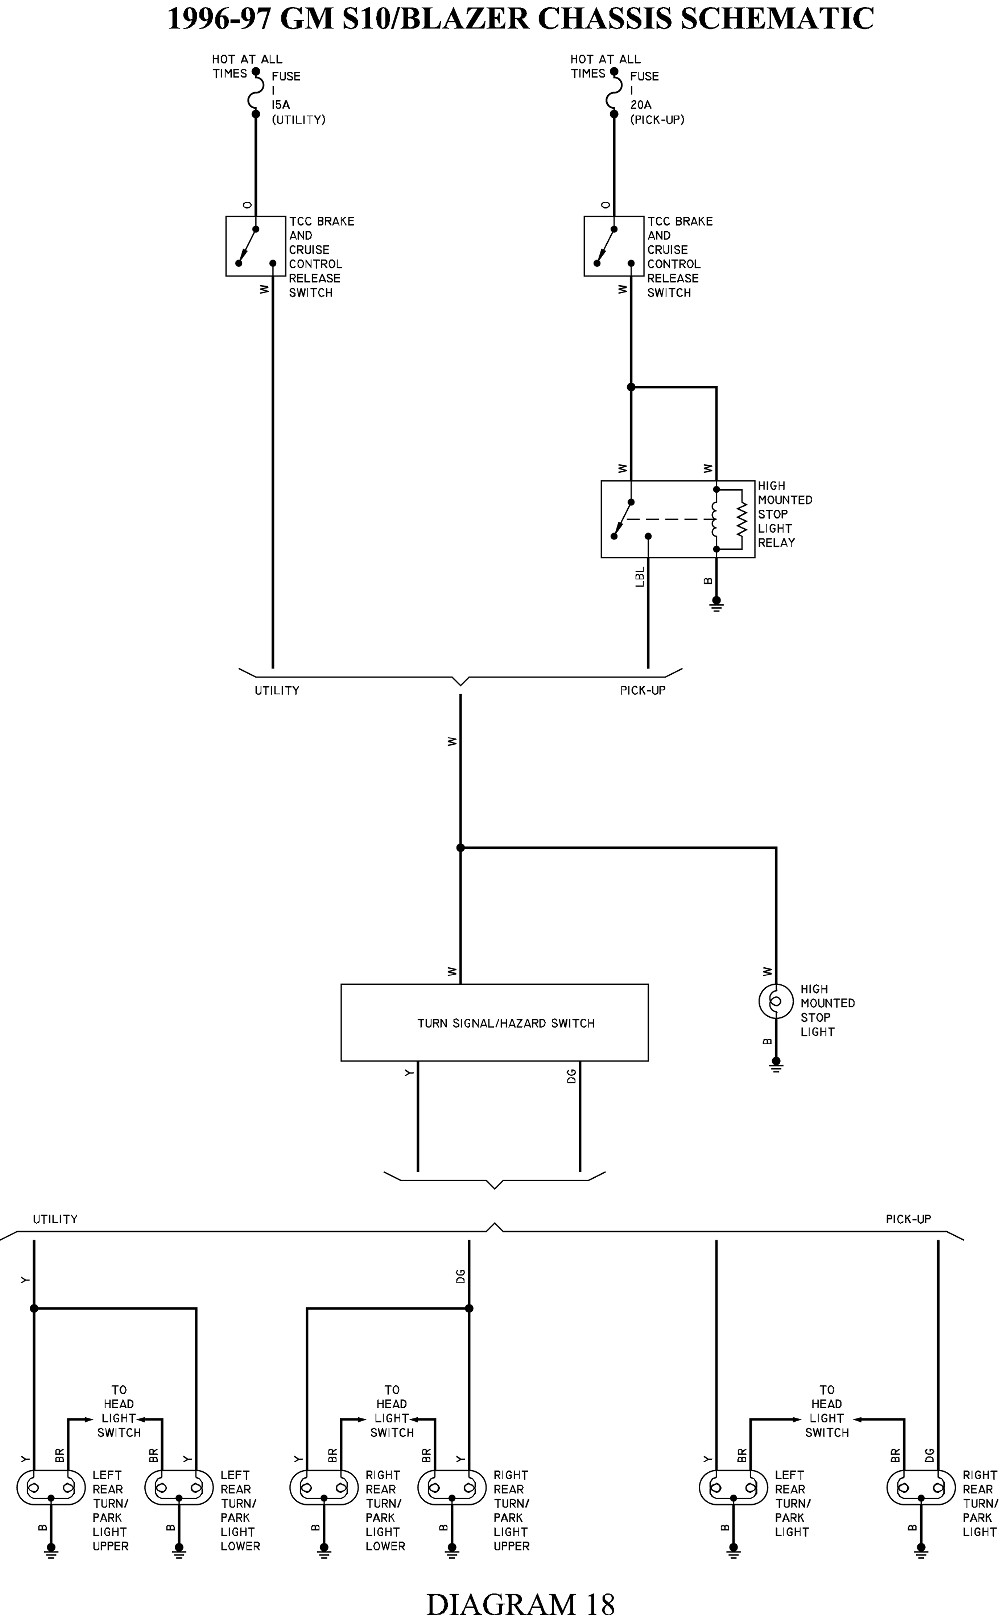 72 Blazer Wiring Diagram Wiring Diagram - RCDIAGRAMS.ADAMEDIAMEDMERA.SEDiagram Database